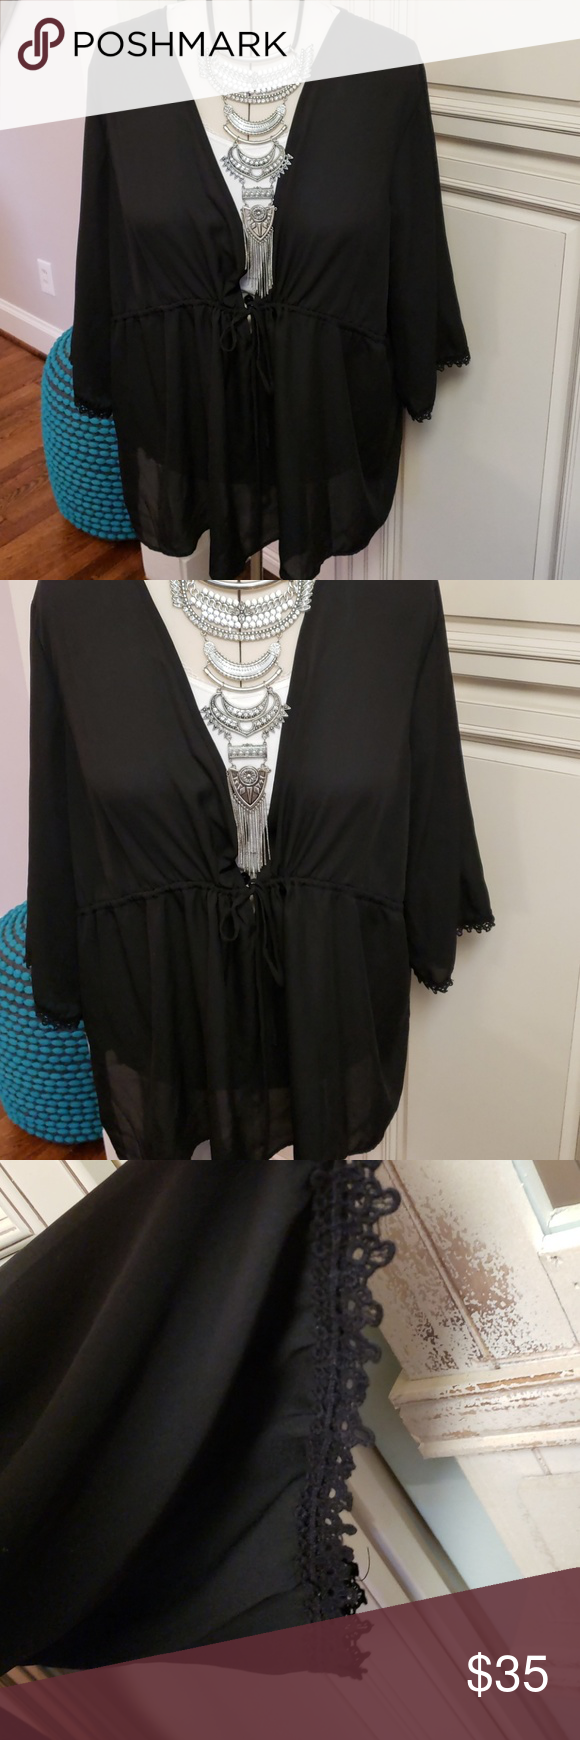 5418ff932f226 NEW! Front Tie Babydoll Top New!! Adorable black front tie top! See Torrid  size chart torrid Tops Blouses